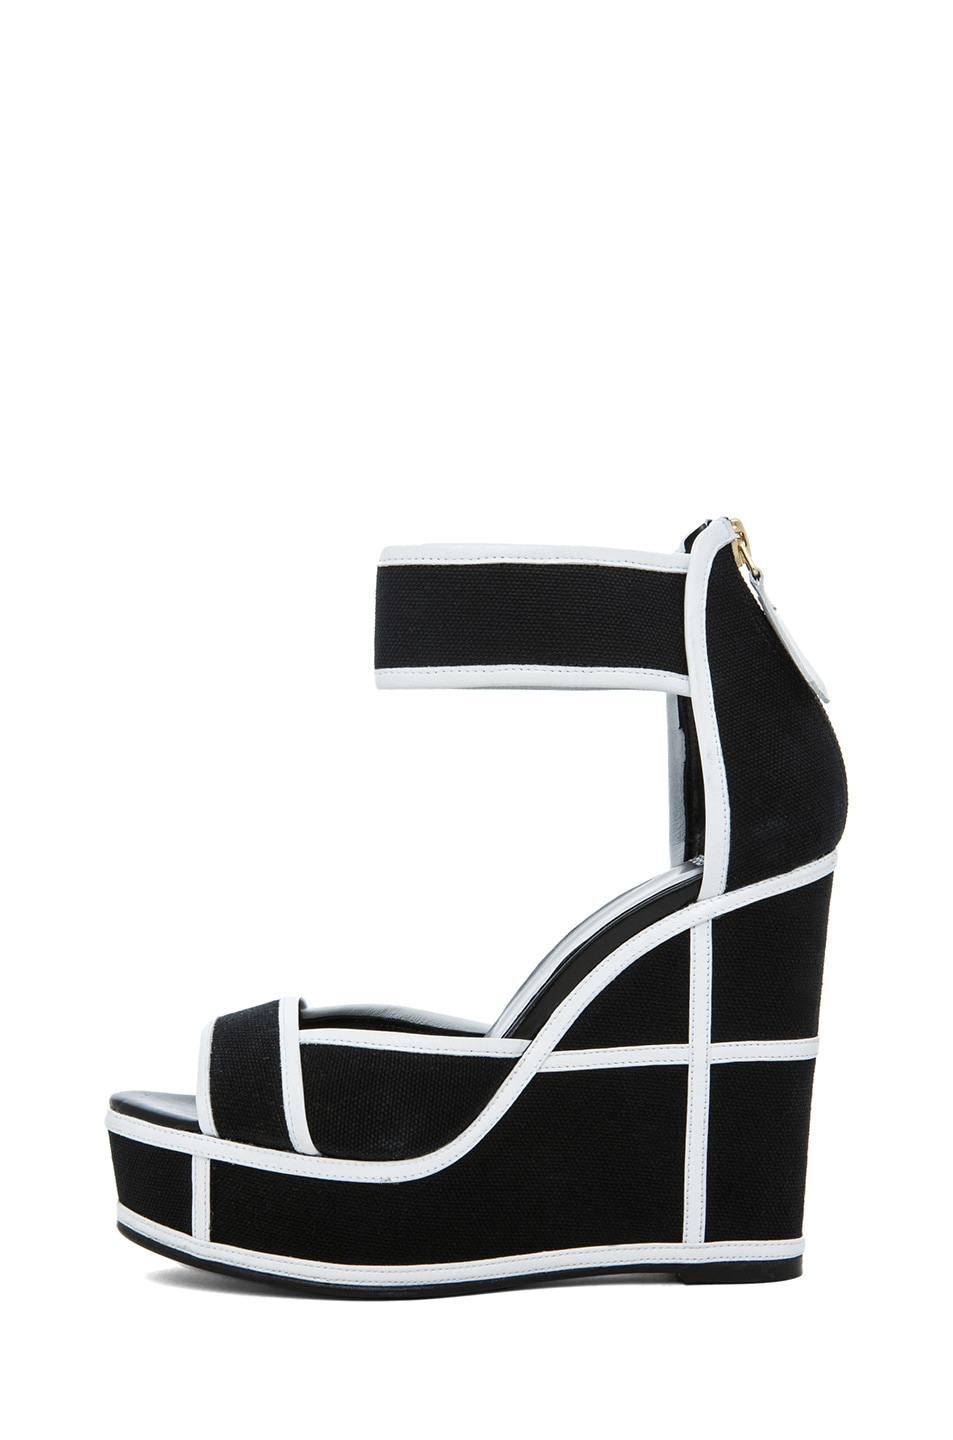 Image 1 of Pierre Hardy Canvas Wedges in Black & White